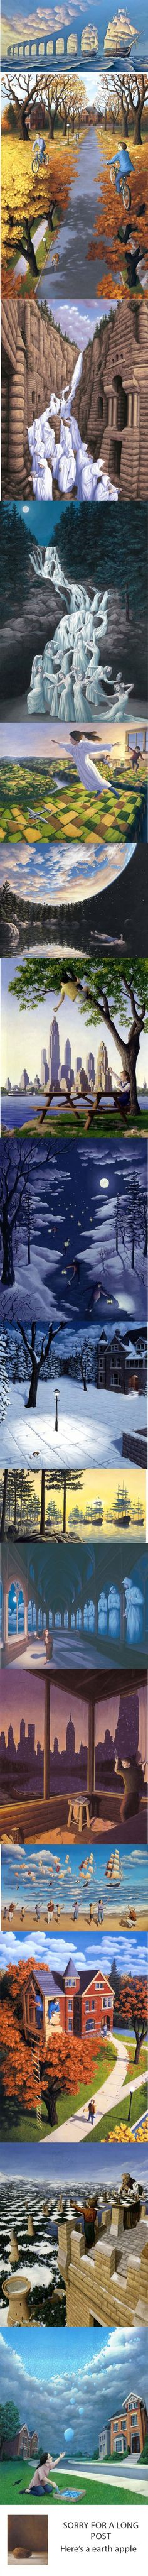 Some of Canadian artist's Rob Gonsalves artwork. When you see it…